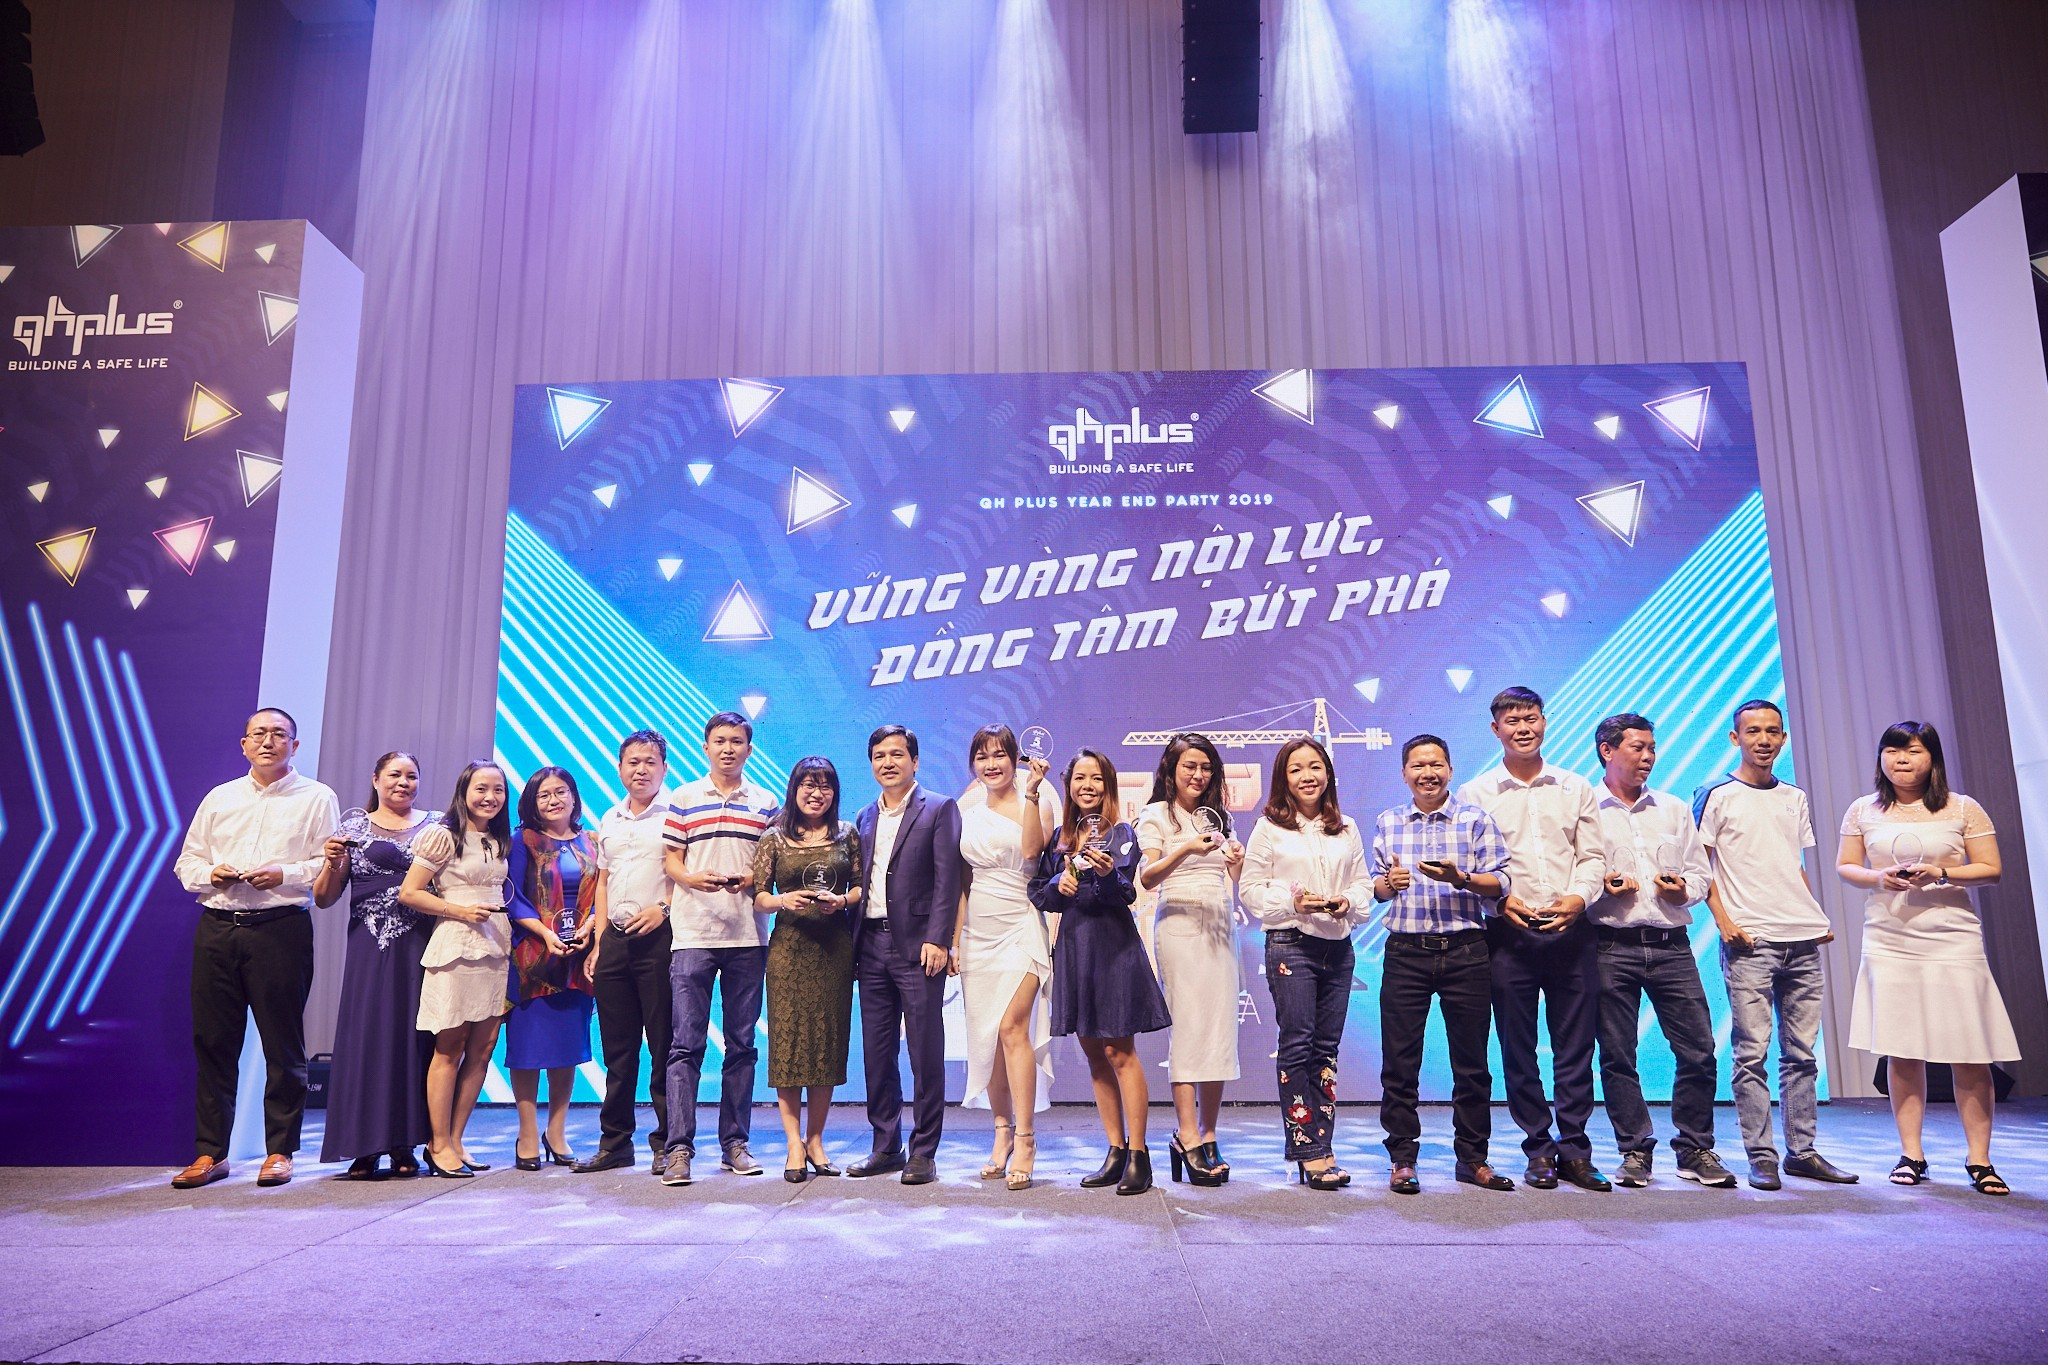 Year end party 2019 - QH Plus